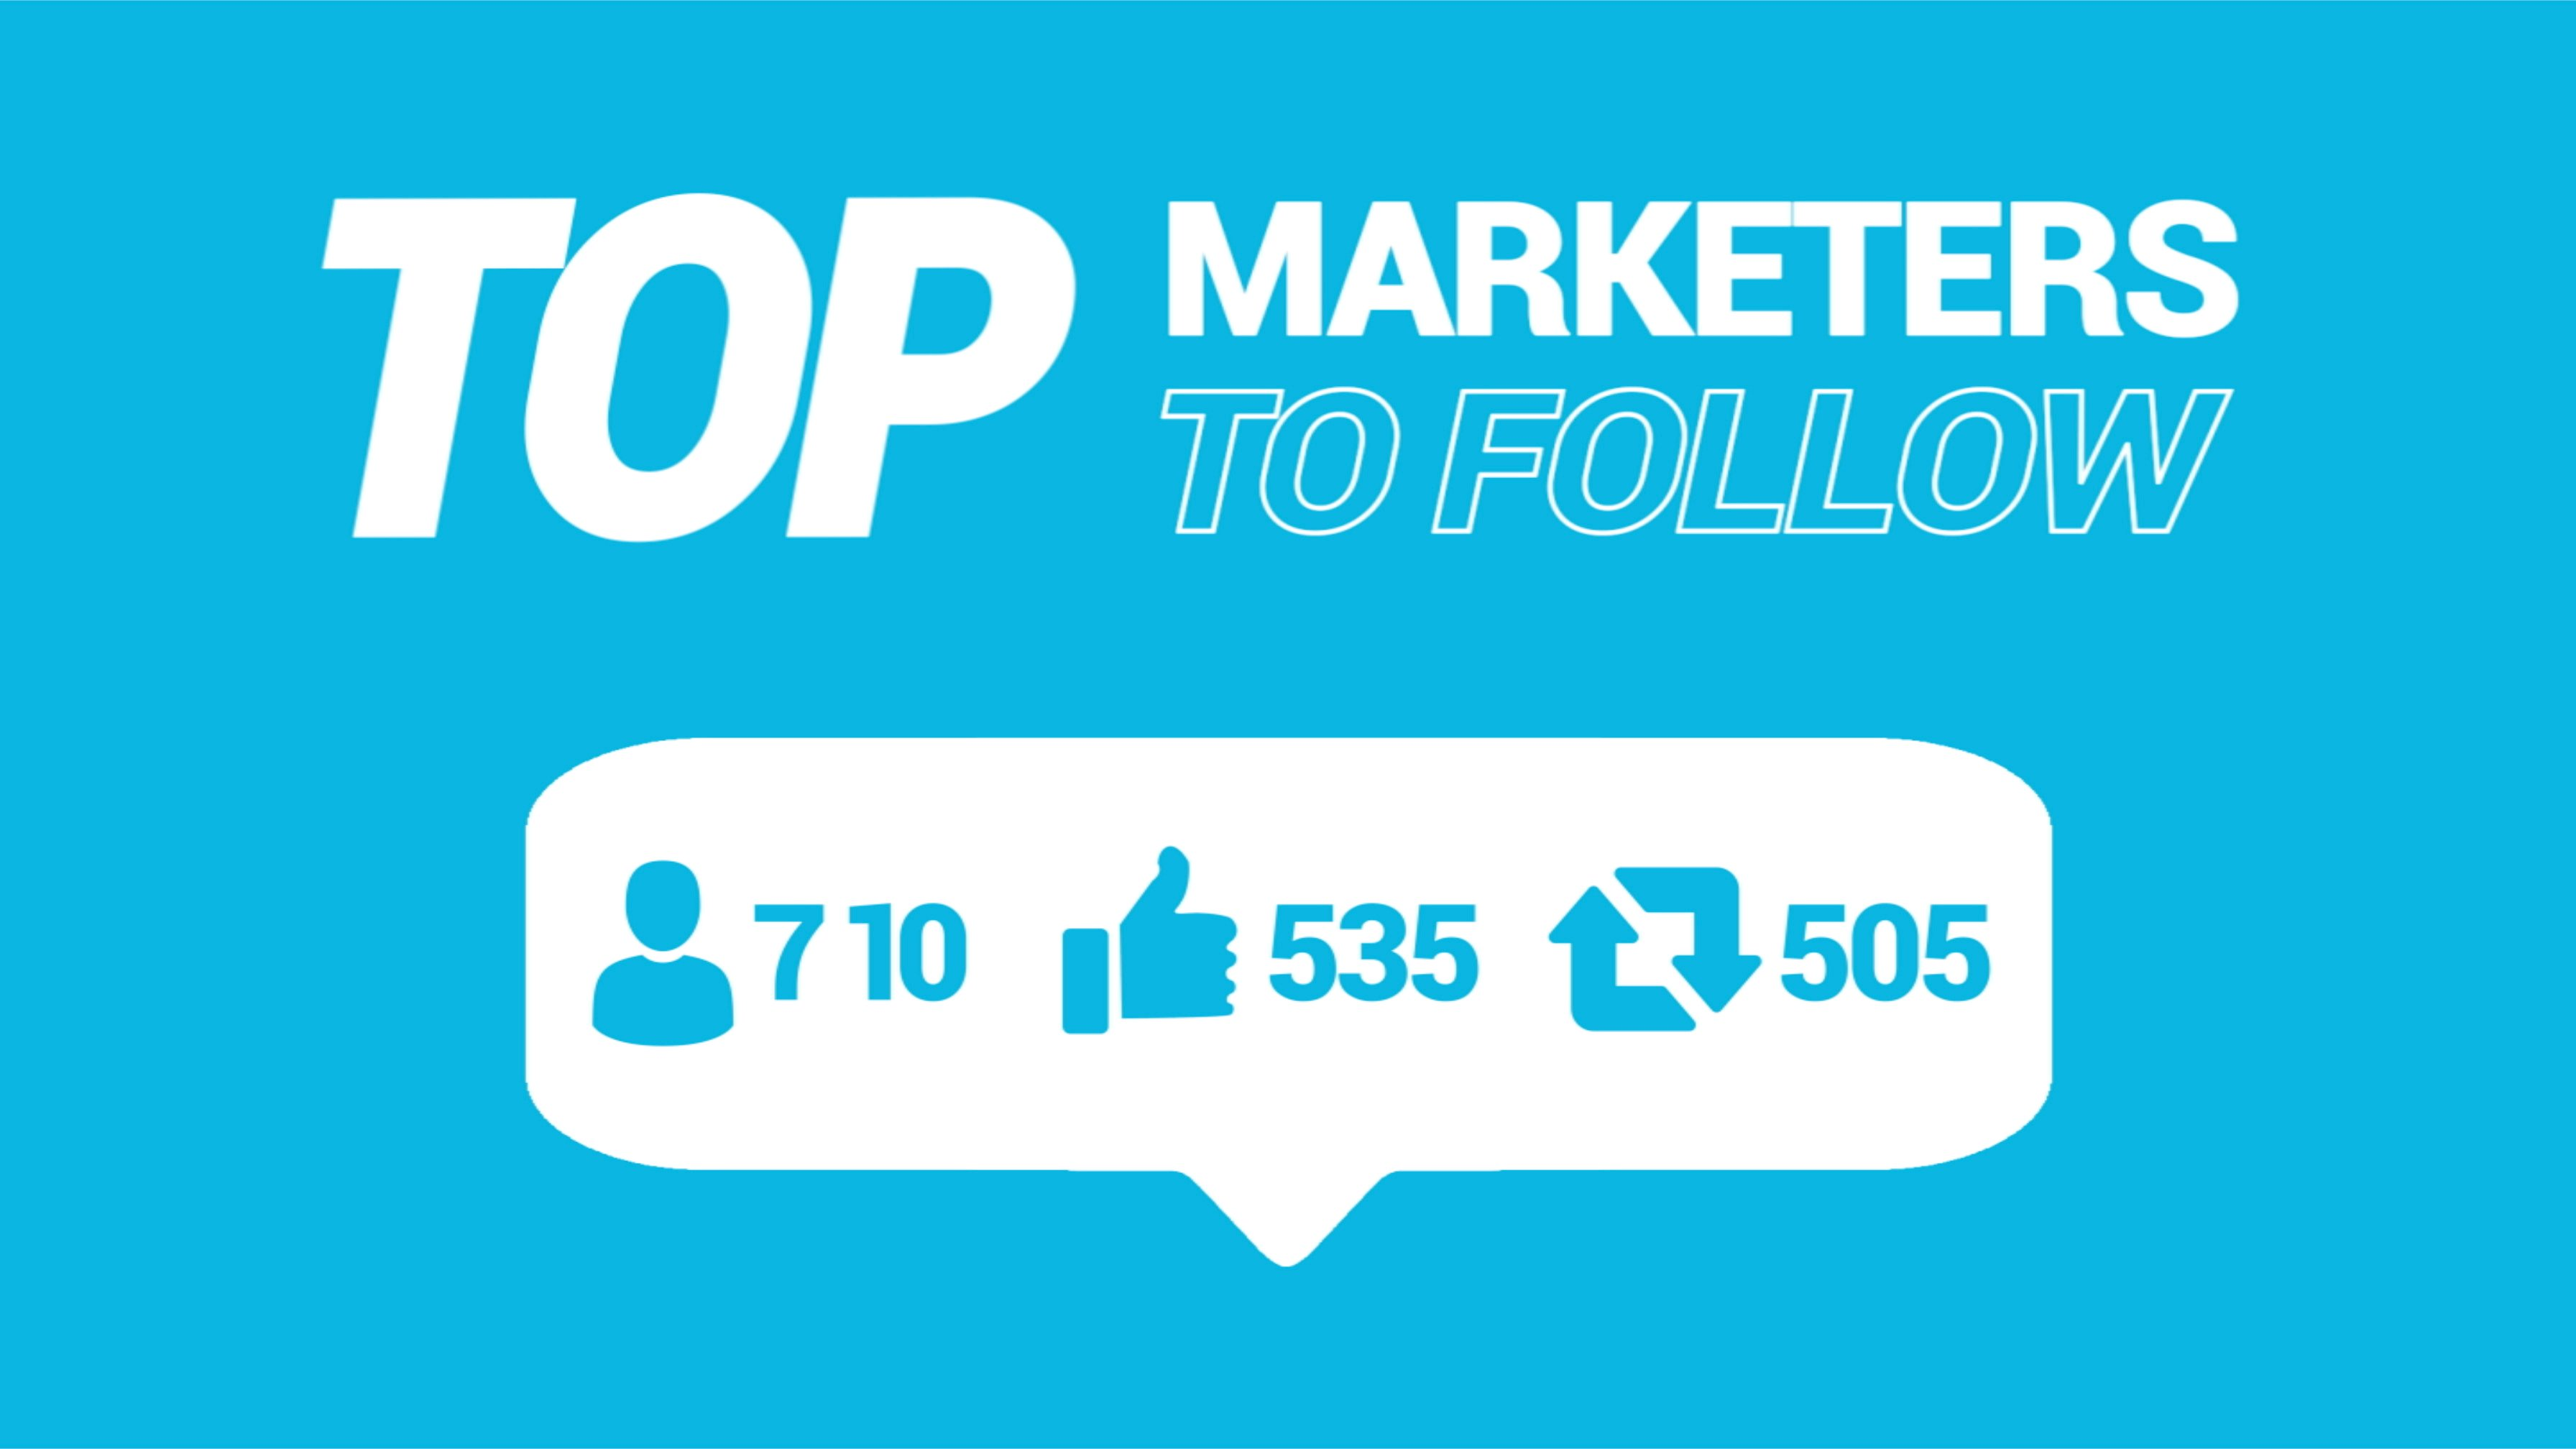 Top Marketers to Follow